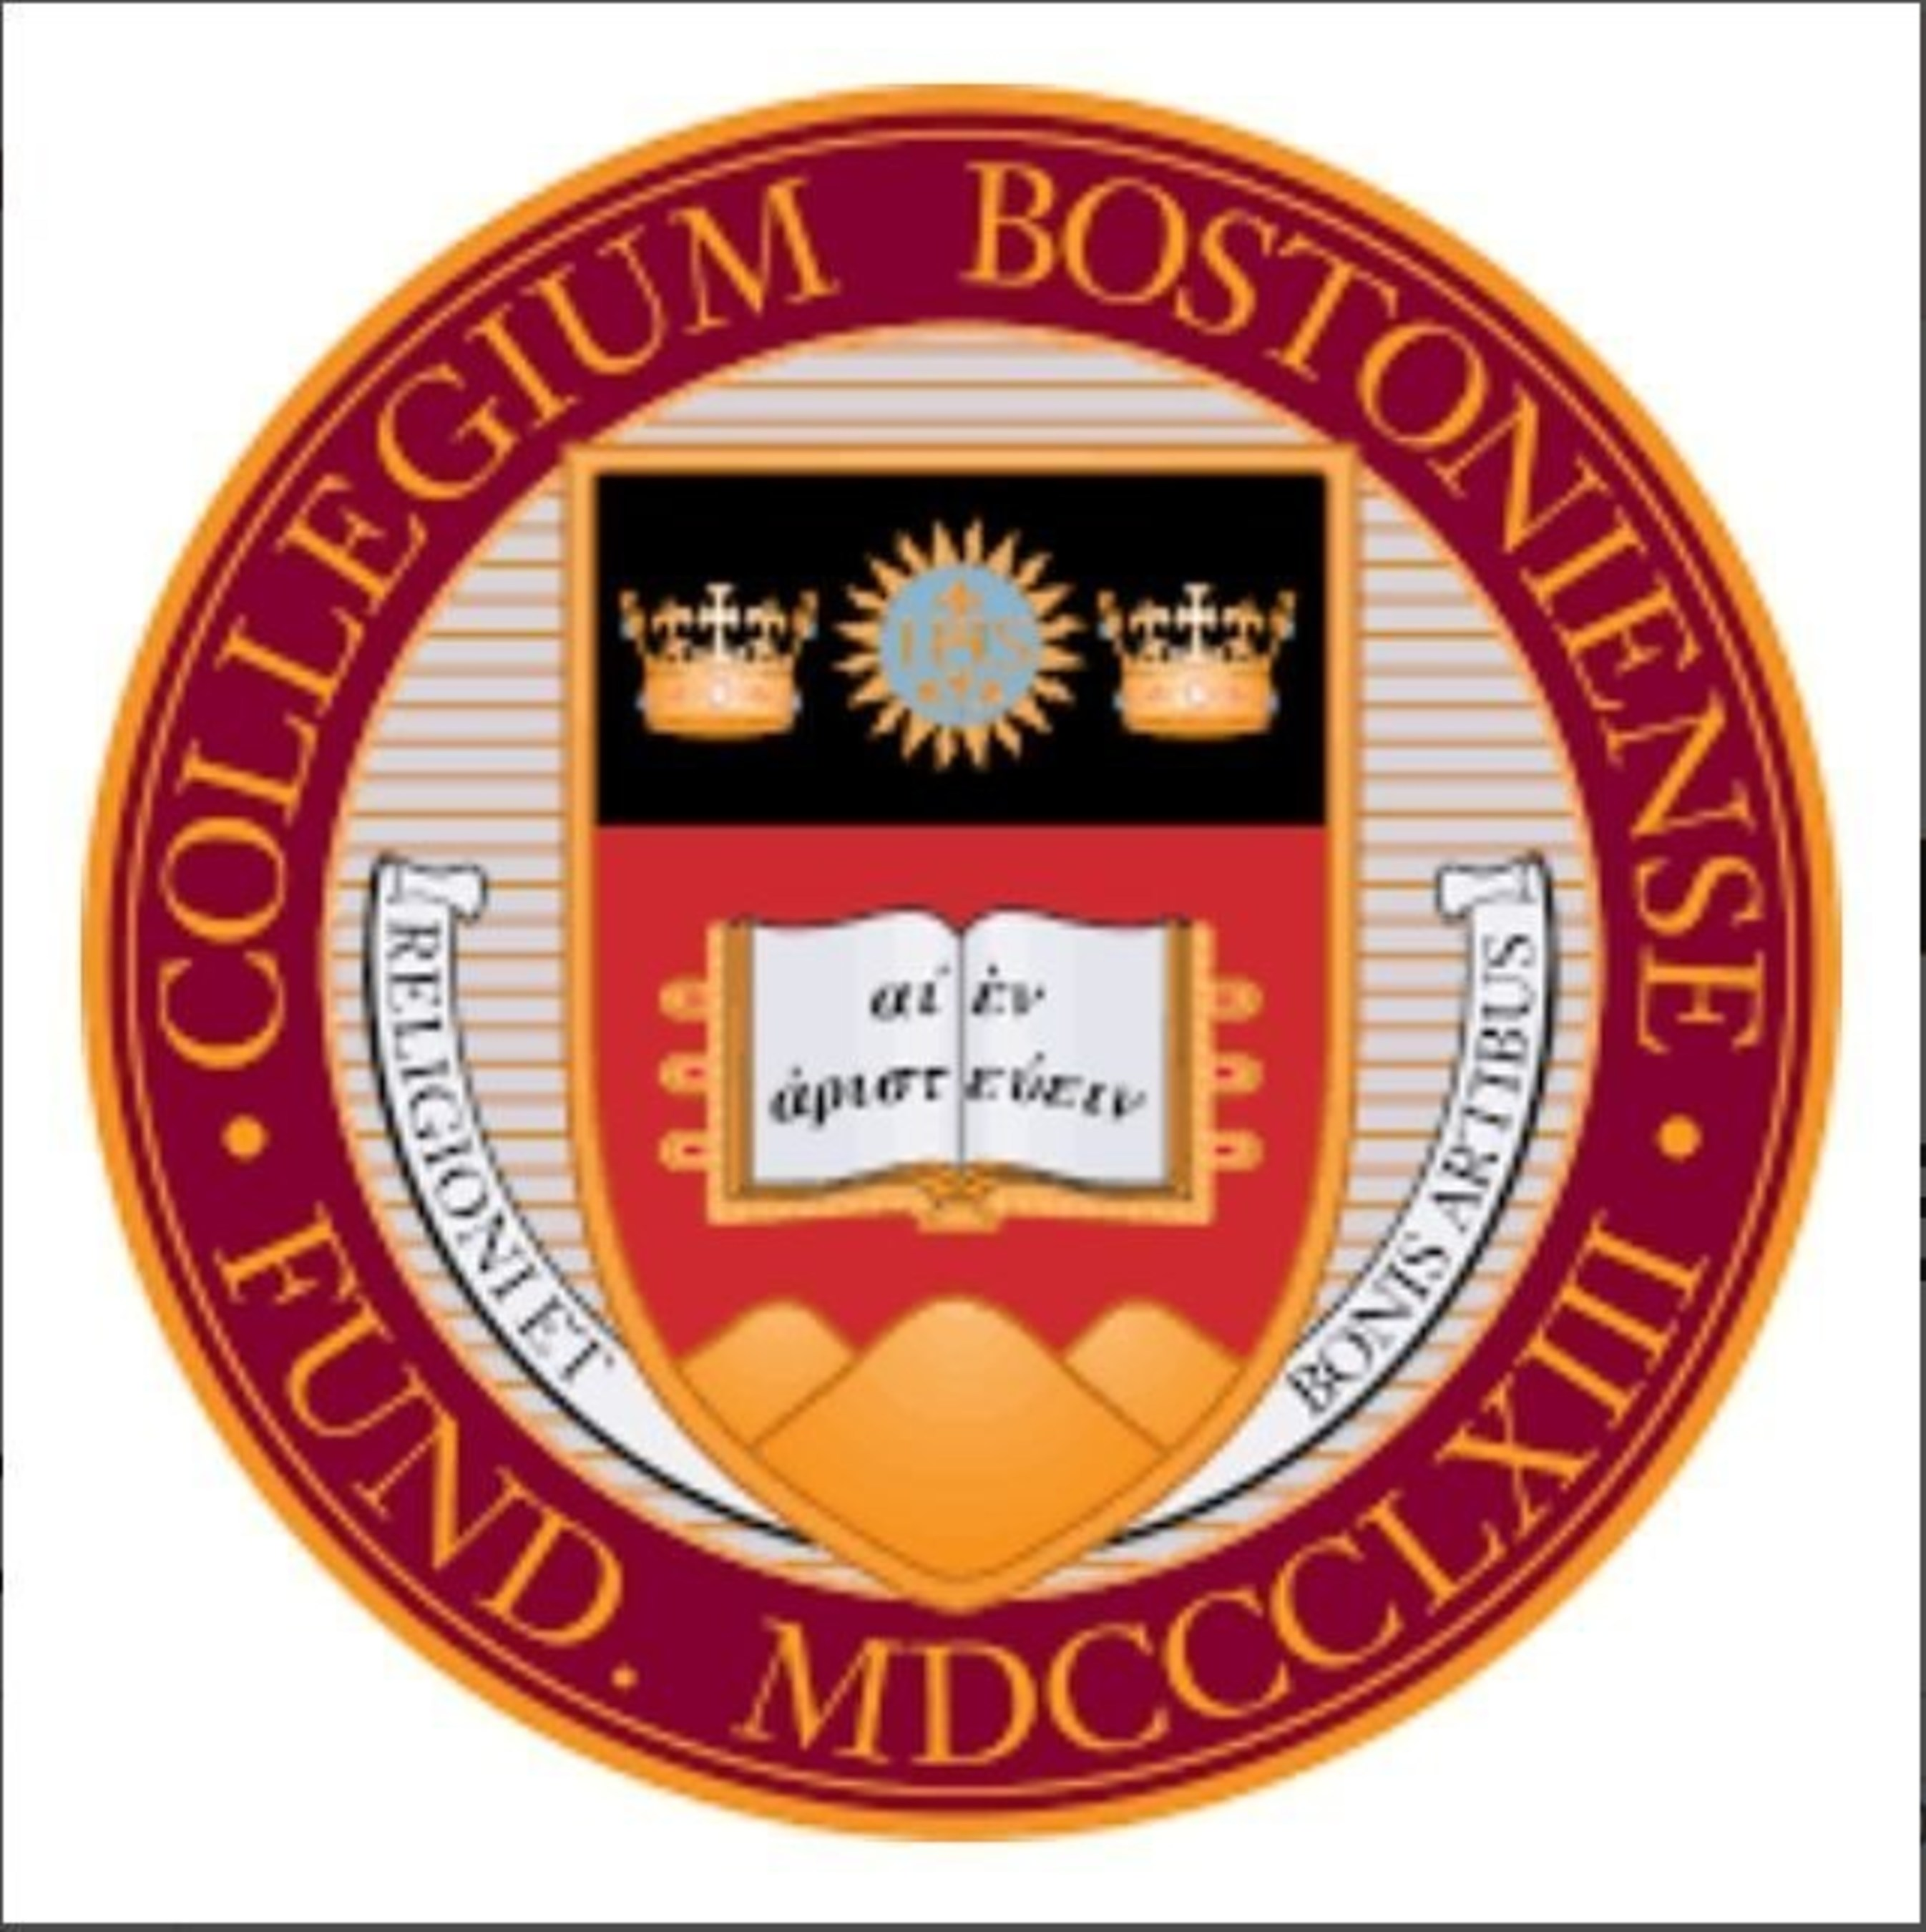 Boston University Dance Program: HAYSTACKID Announces Partnership With Boston College